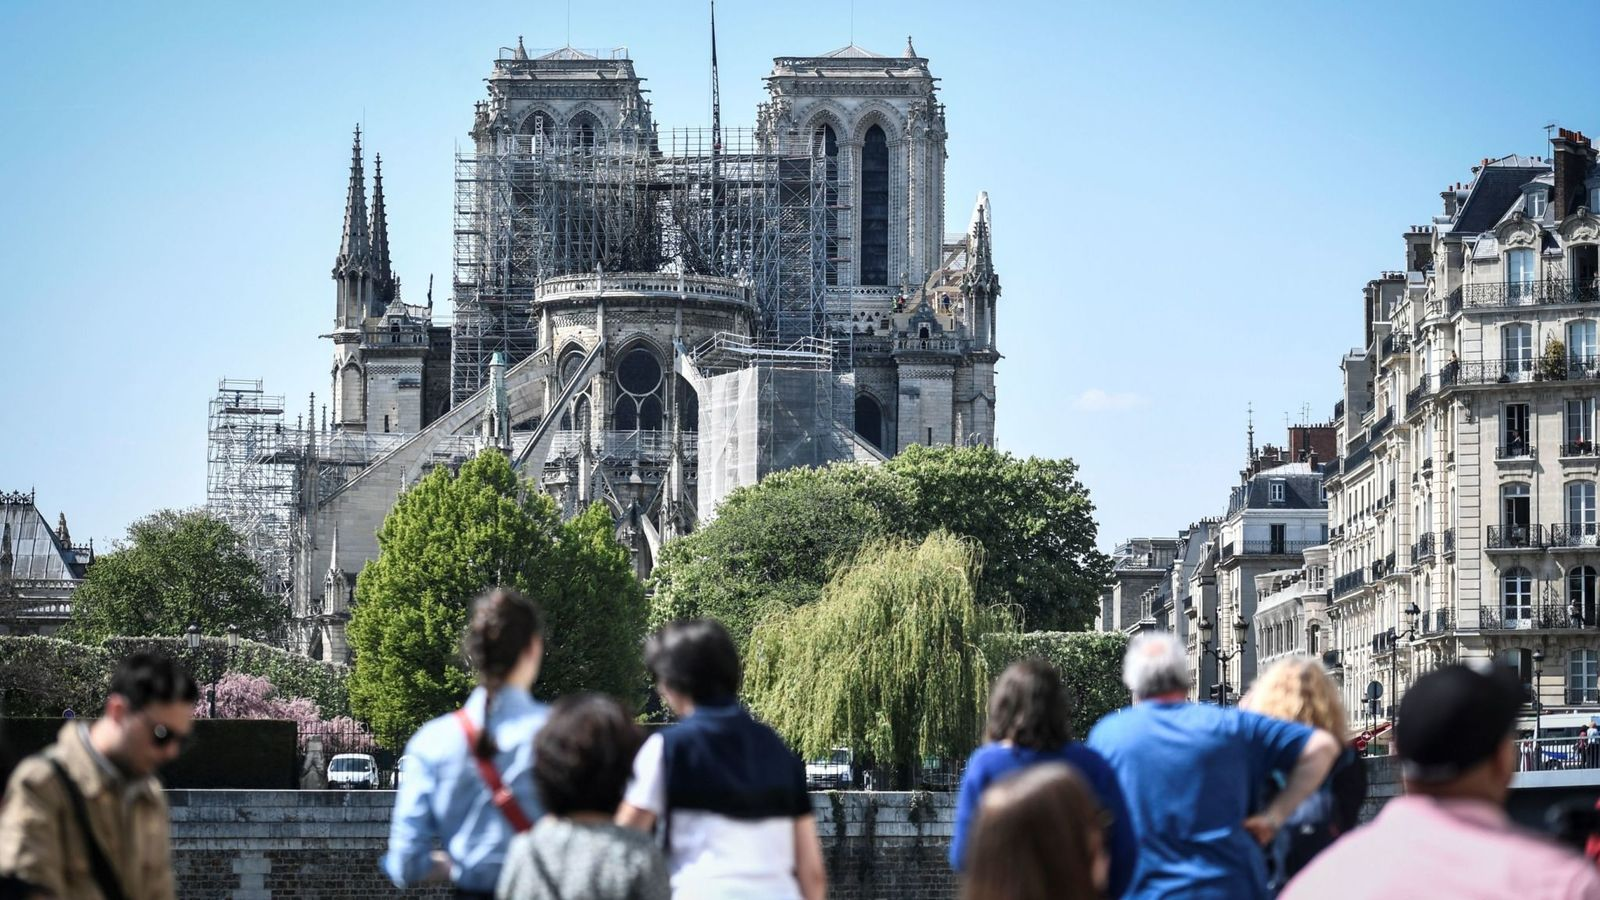 The Reconstruction of Notre Dame